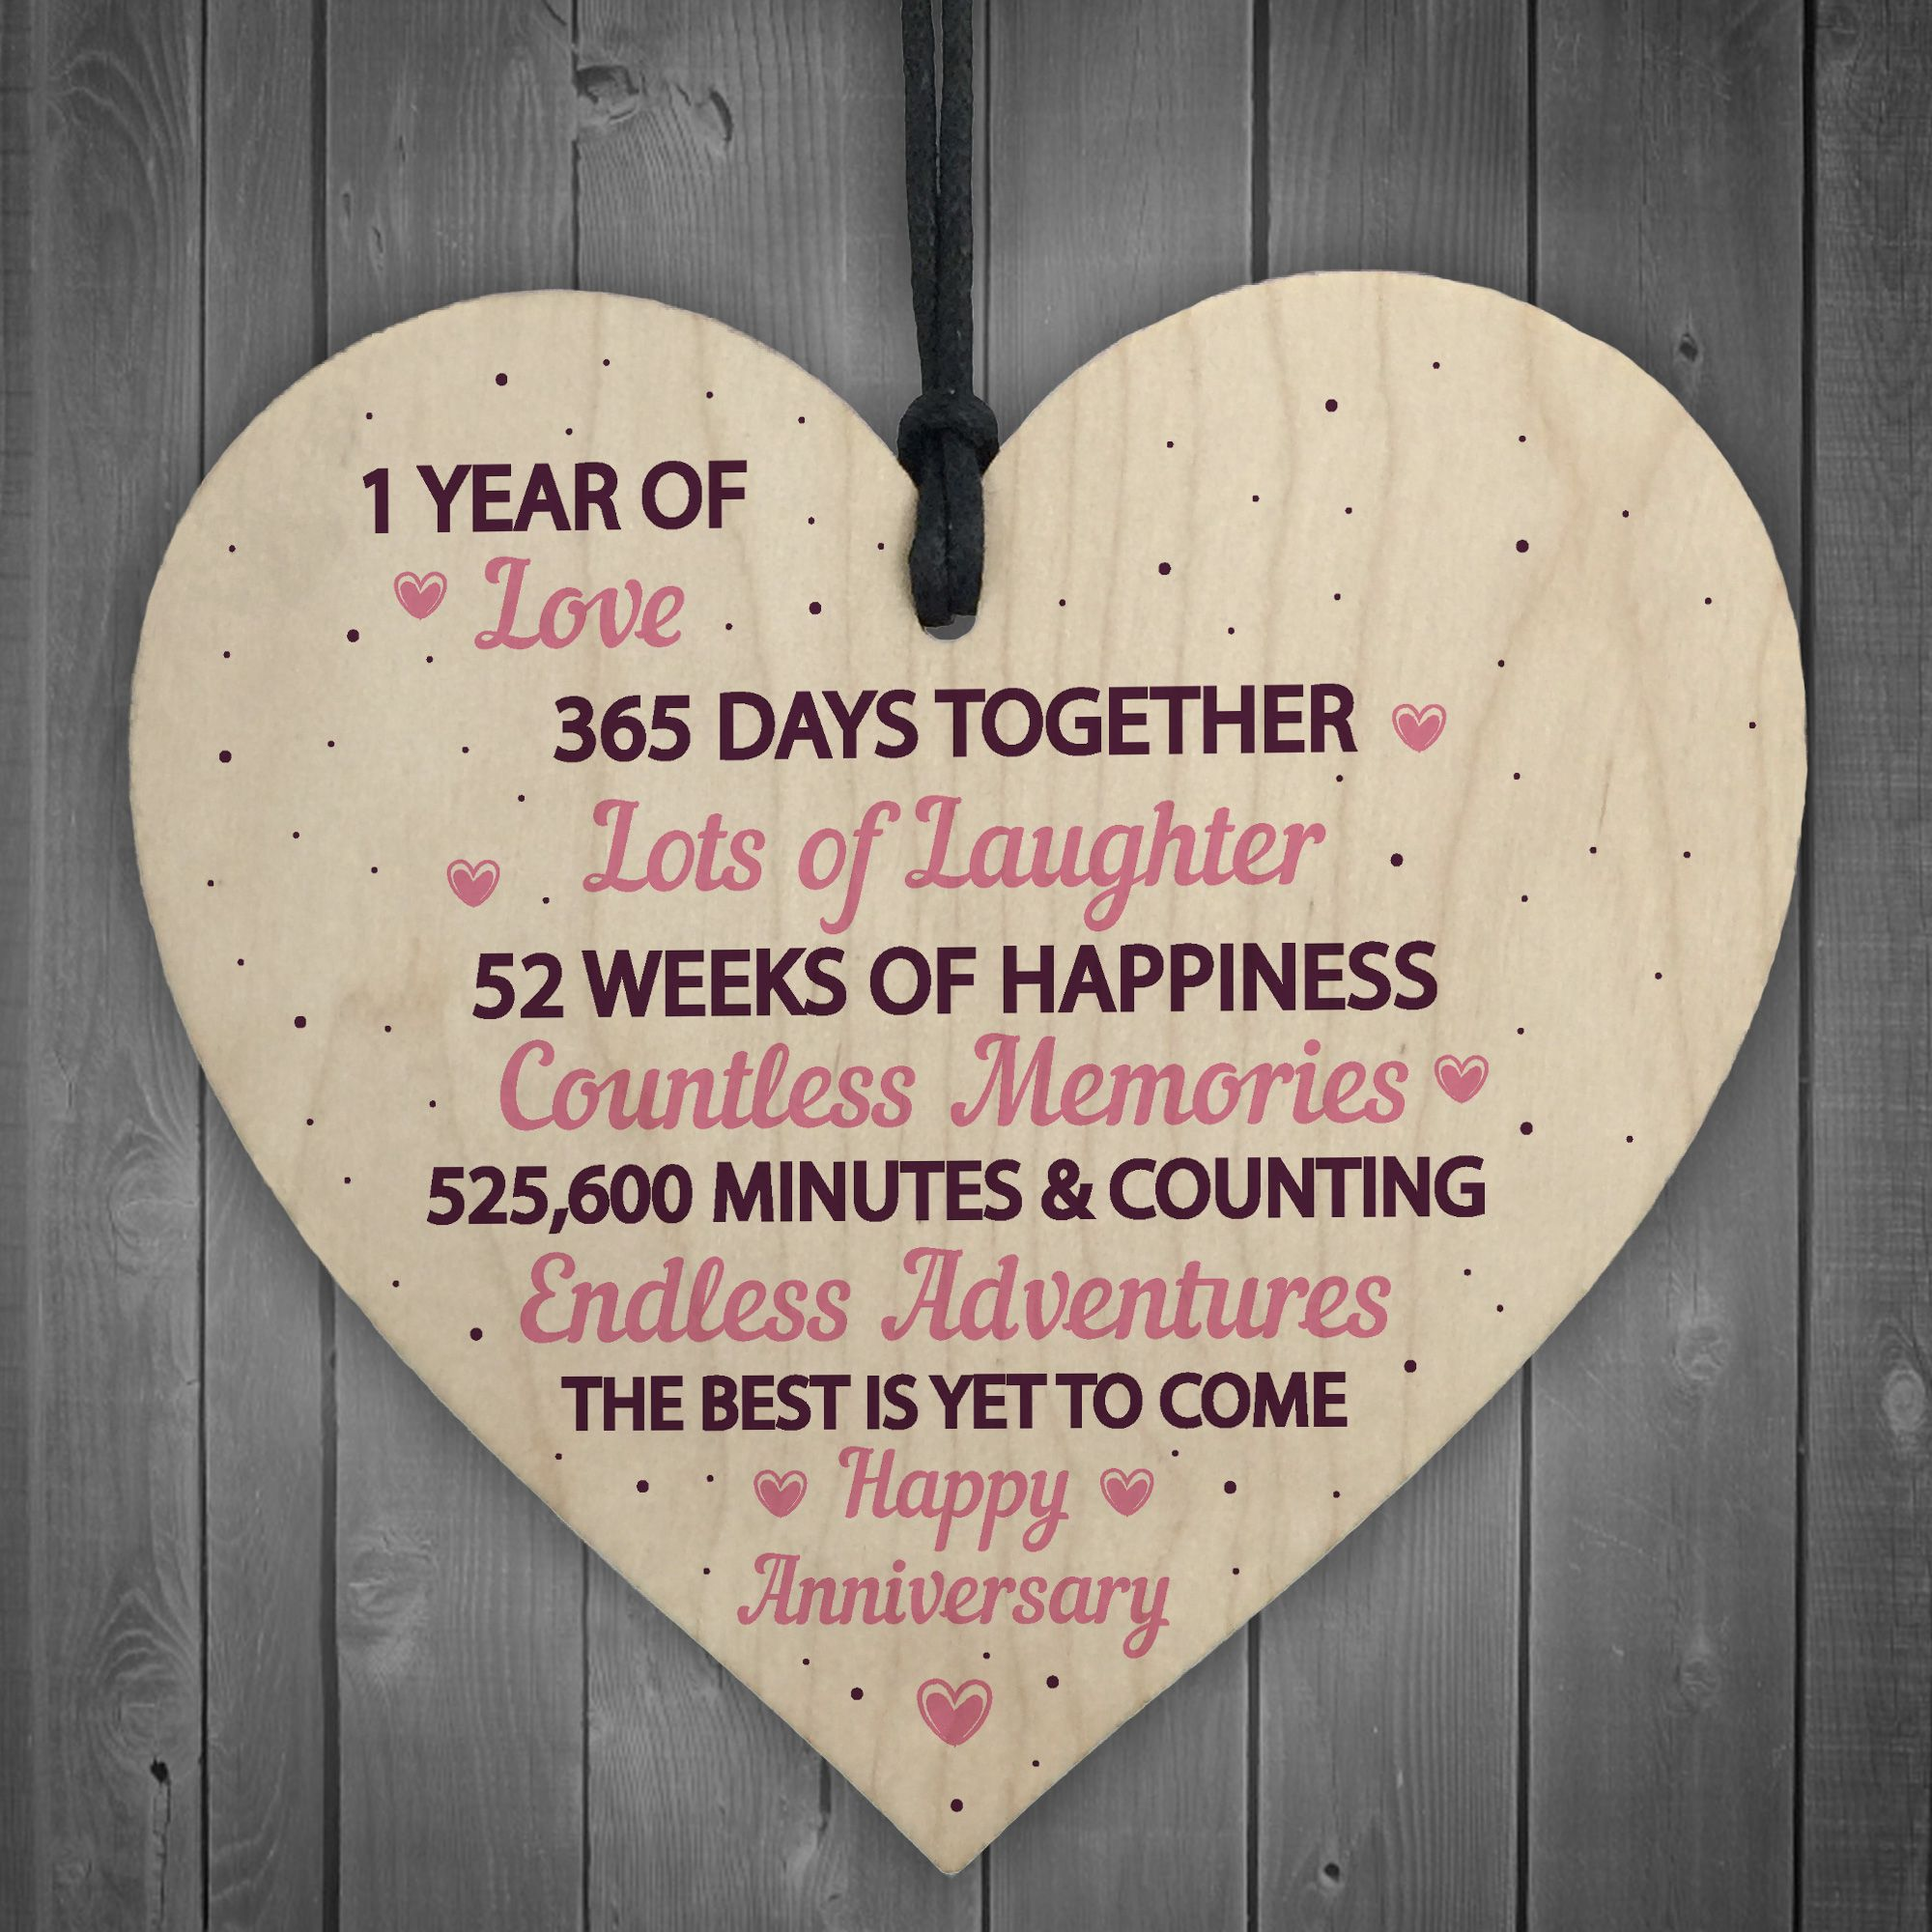 Best Gifts For Husband On 1st Wedding Anniversary In 2020 Anniversary Gifts For Wife First Wedding Anniversary Gift 1st Wedding Anniversary